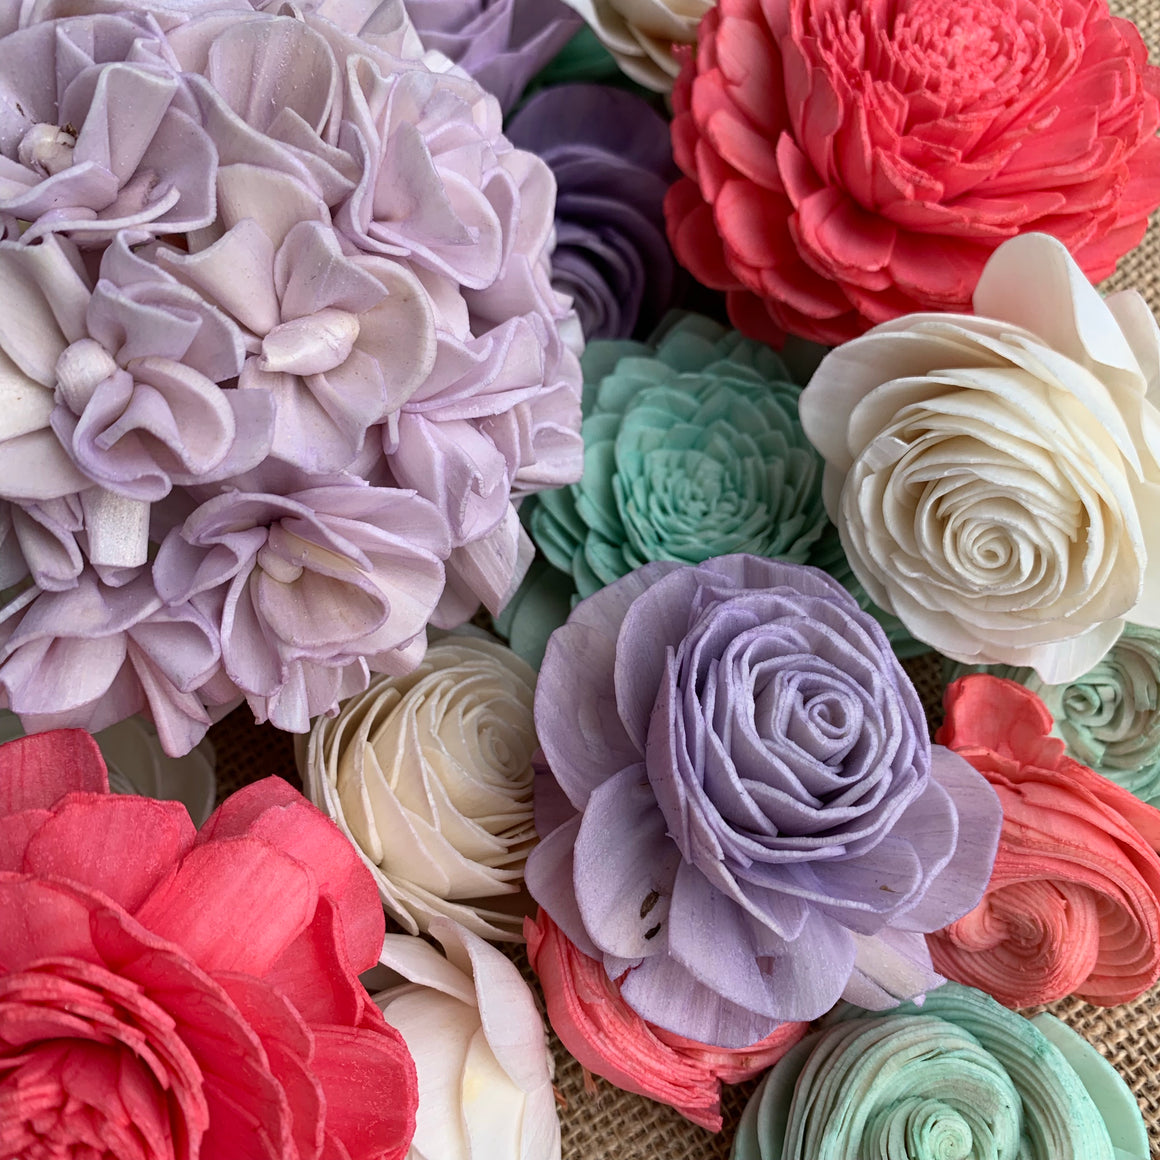 Blush Bloom Assortment